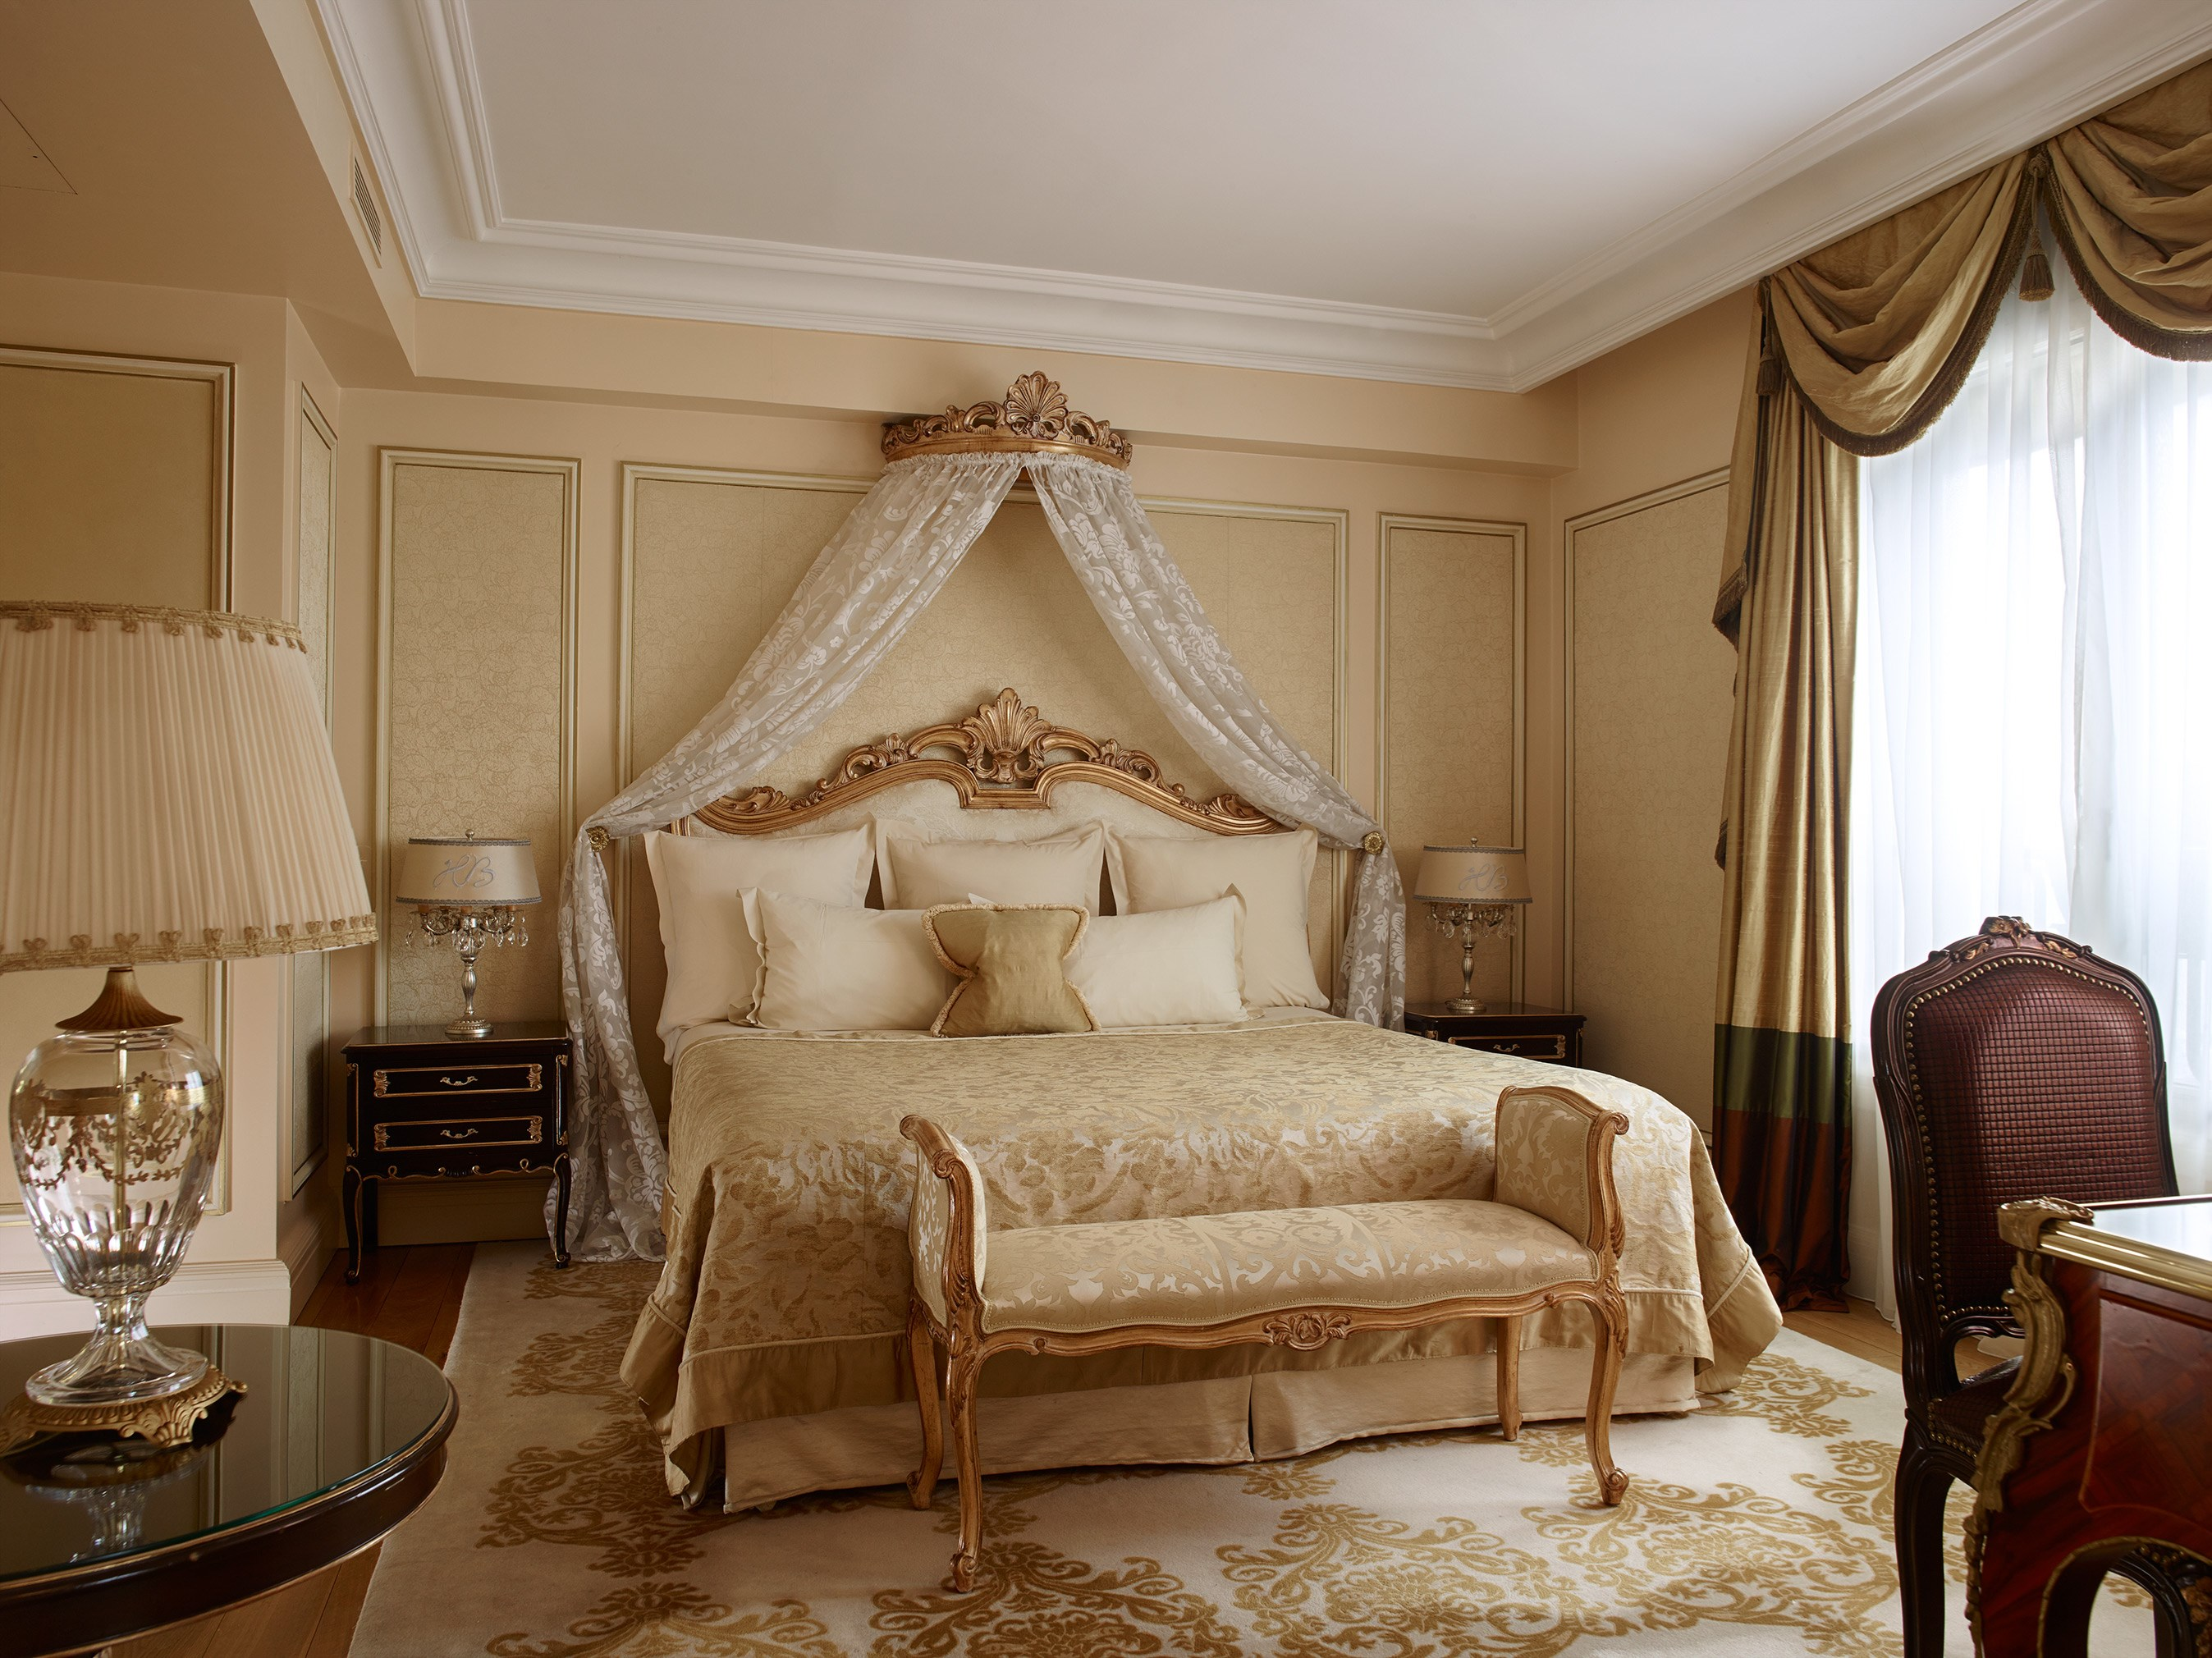 Royal Suite Hotel Balzac Paris